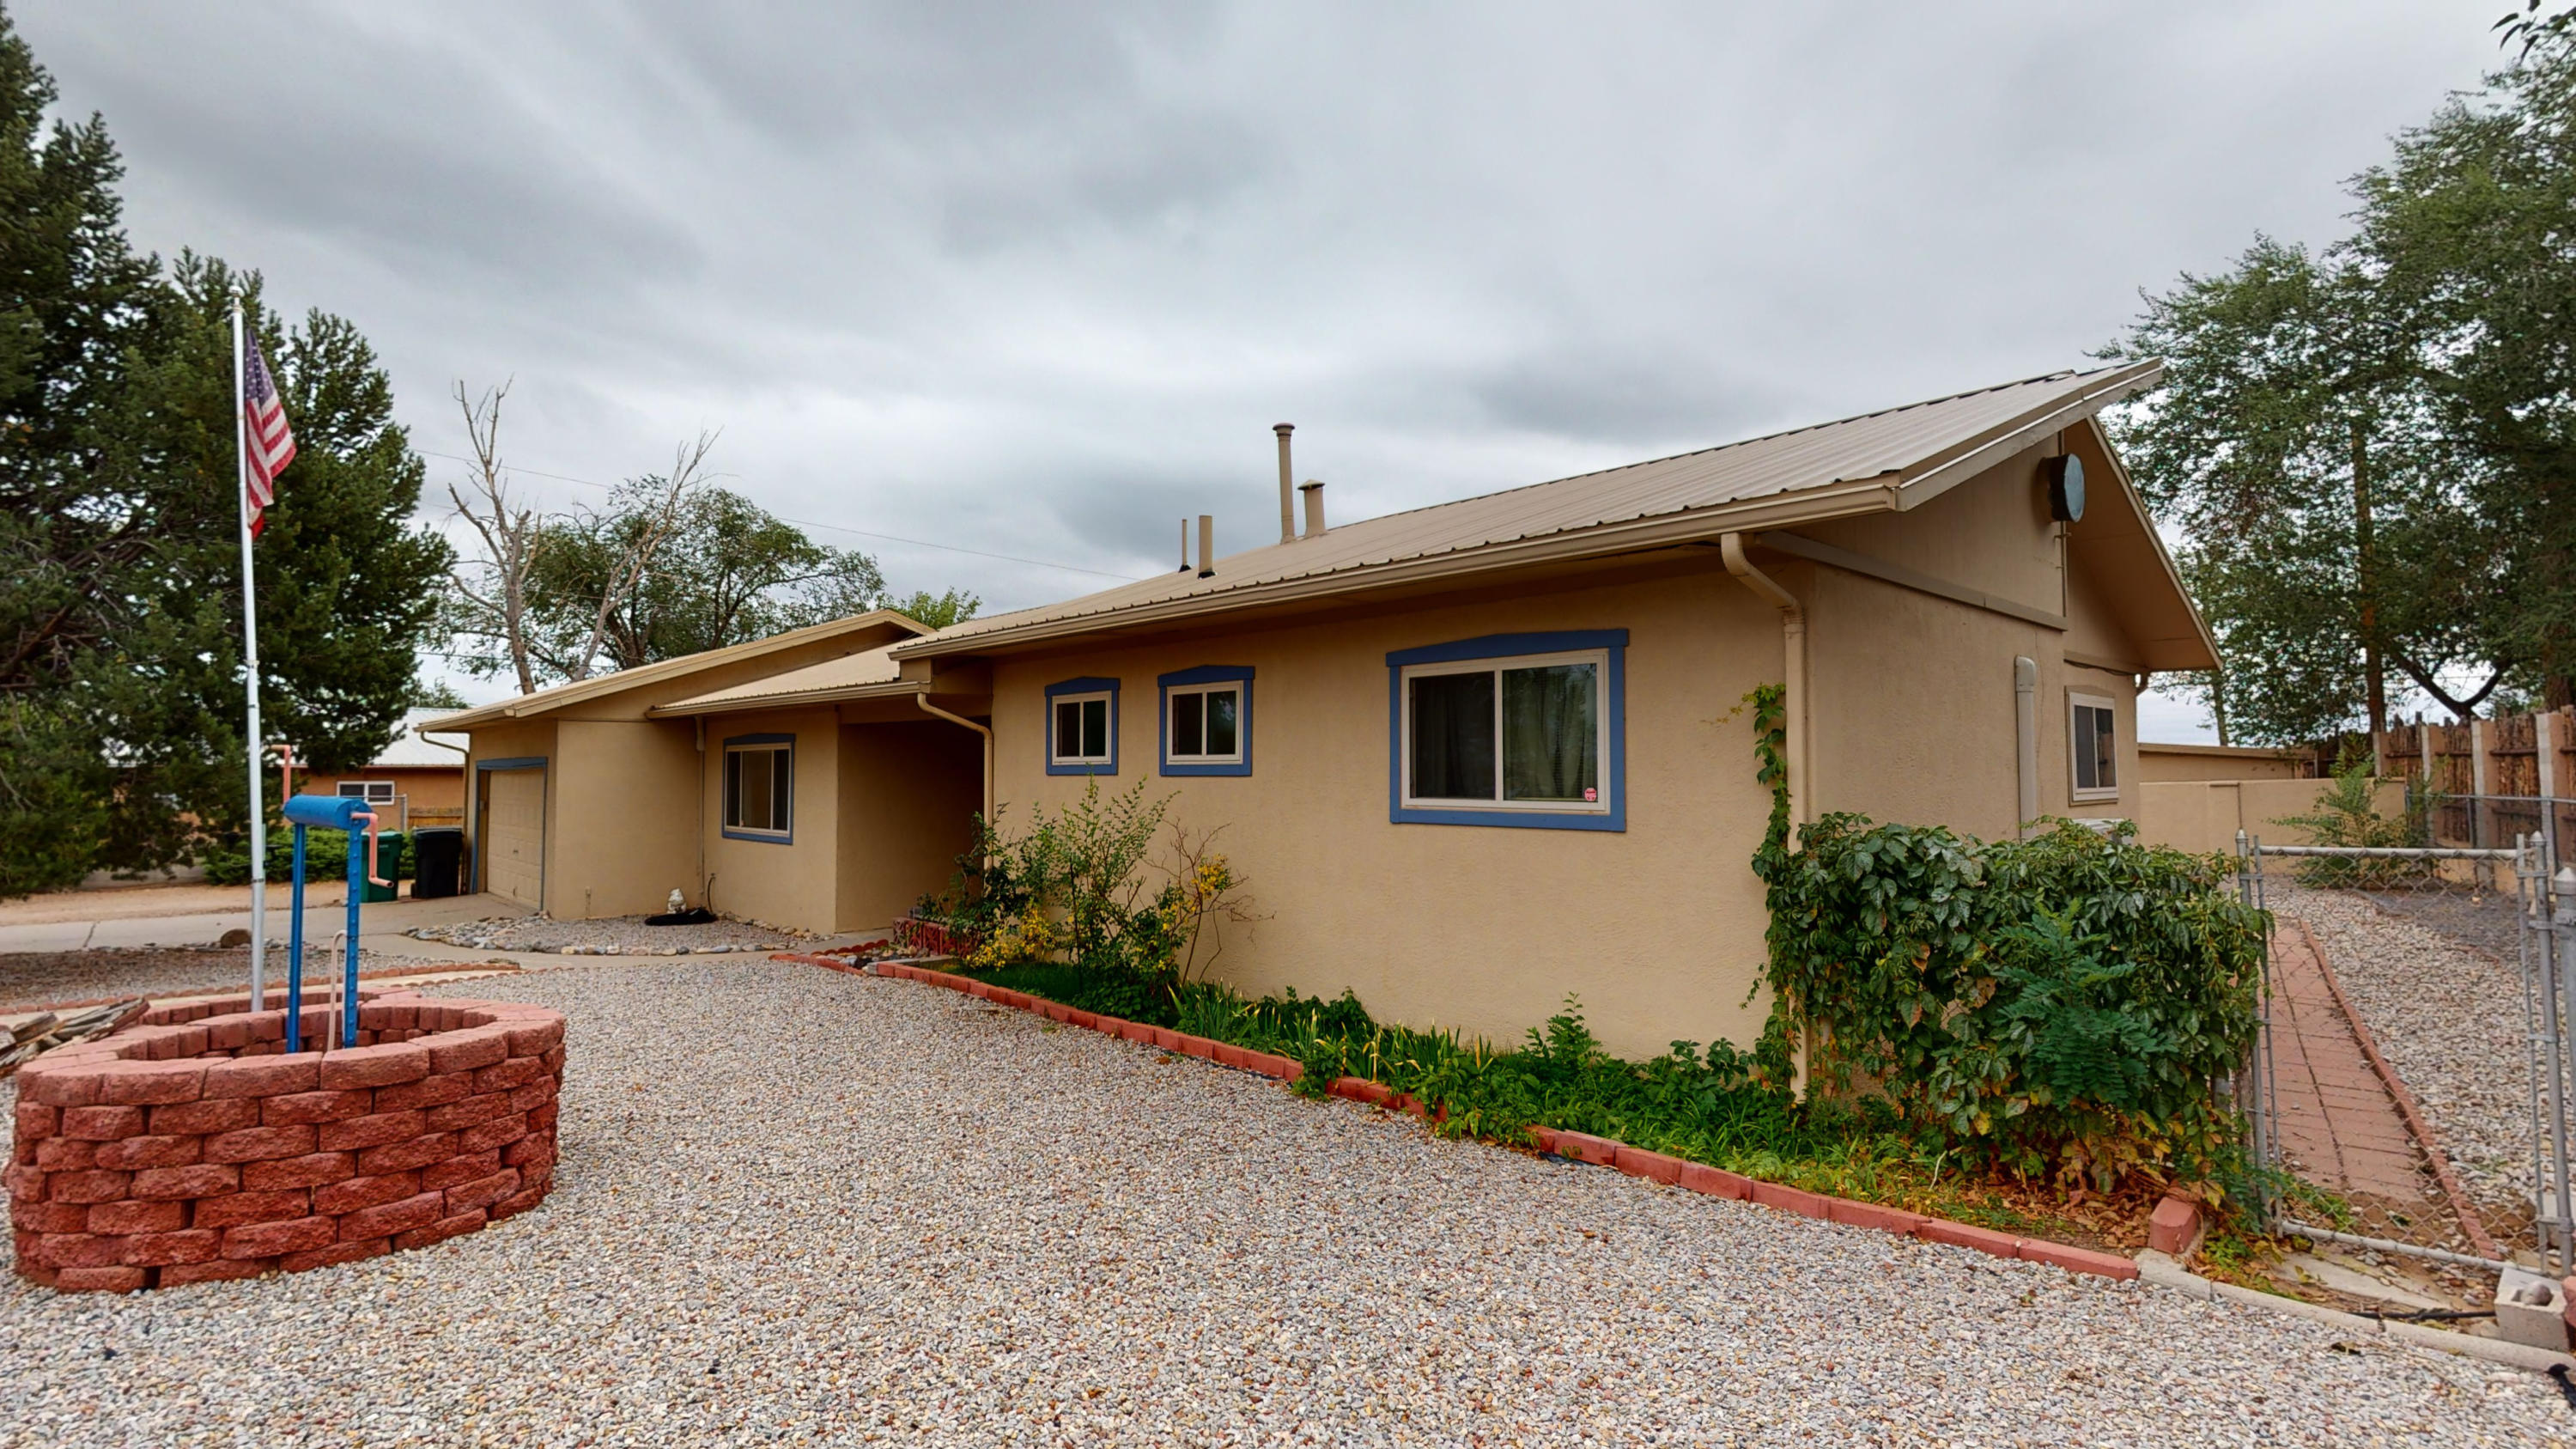 Move-In Ready One Story Home on 1/2 an Acre  with a Country Feel, but Right Next to All of the City Conveniences!  This Home Has Back Lot Access w/ a 10' Gate and RV Hookups!  The Home Offers 2 Living Areas, a Large Kitchen w/ Abundant Cabinet and Counter Space, Laundry Room, 3 Large Bedrooms,  Covered Back Patio and 2 Sheds!  Upgrades Include a Metal Roof,  Pro-Panel Fence in the Back, Fenced and Gated in the Front, Mitsubishi Ductless A/C and Heating Units  in Each Room, New Electrical and 220 in the Garage! Zoned for Horses and Large Animals!  Hard to Find in the City and is a Must See!